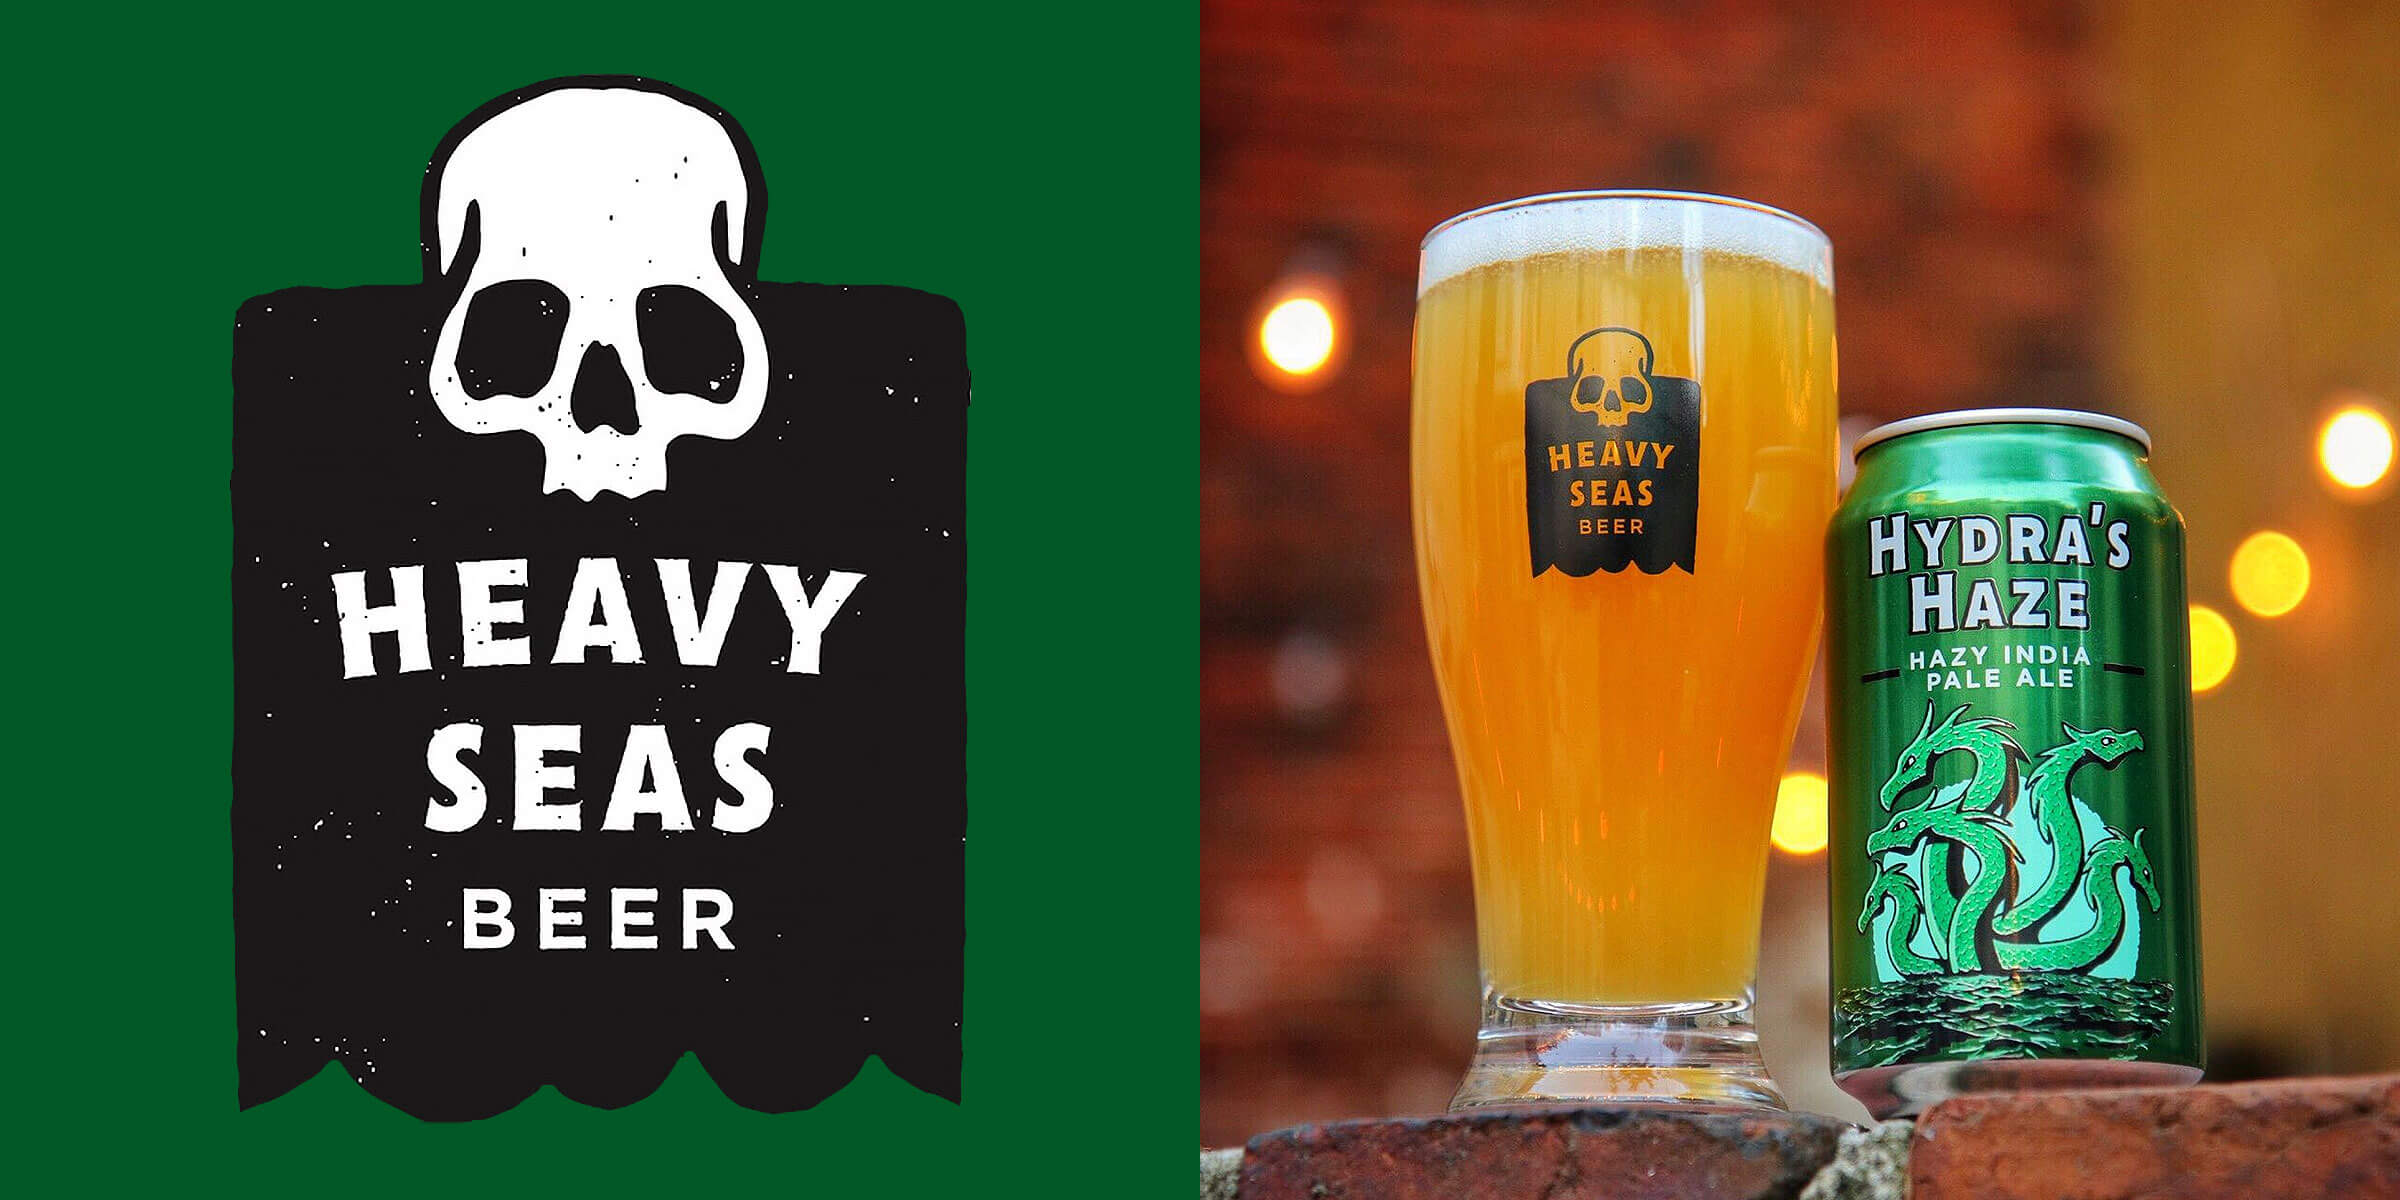 Heavy Seas Beer will release a brand new offering in 2020 — Hydra's Haze, a Hazy IPA — in 12 oz. cans across the brewery's footprint in January.